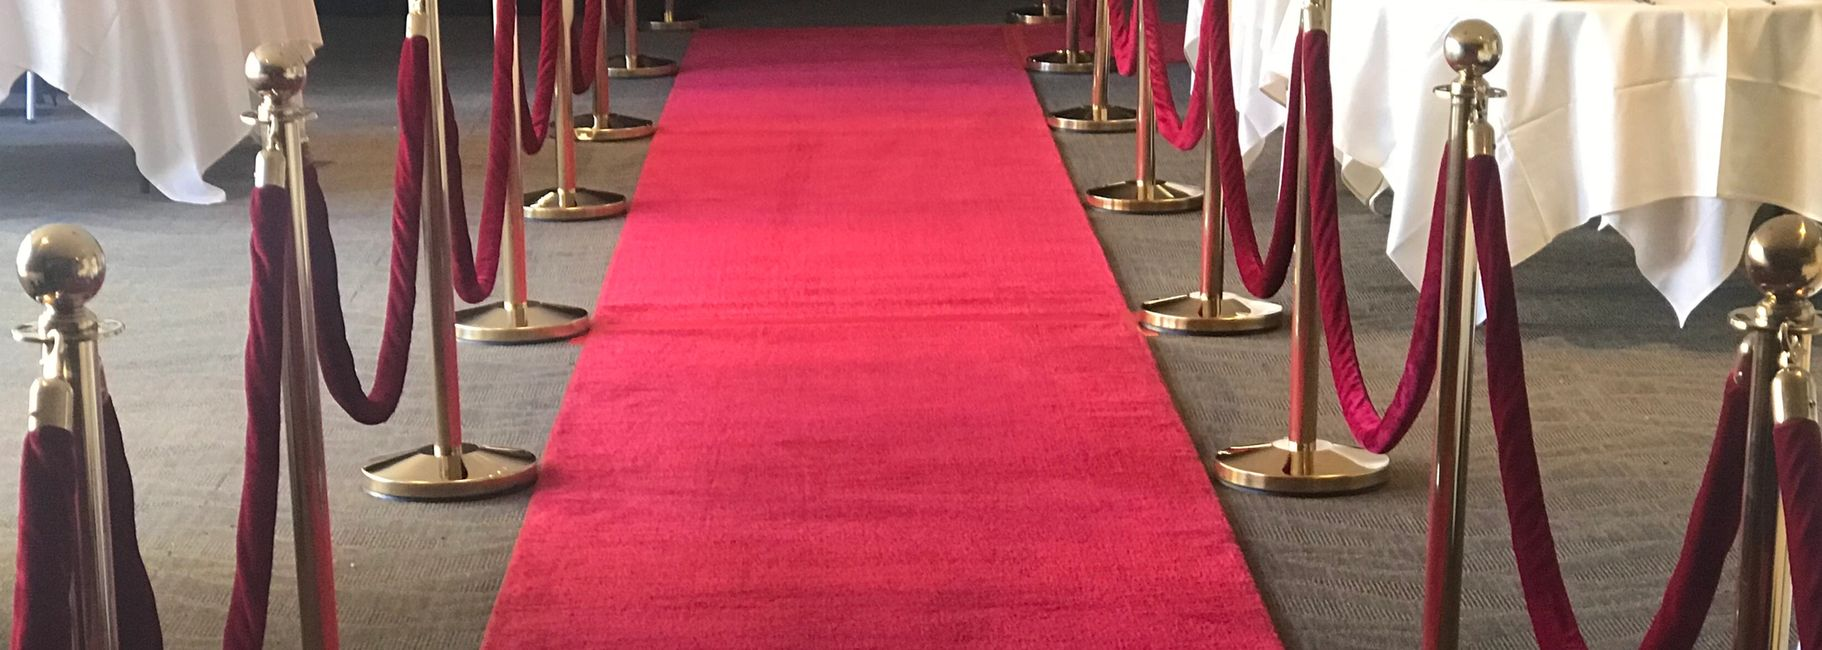 Bay Area Red Carpet Rentals, Red Carpet Runners, Royal Blue Carpet Runners